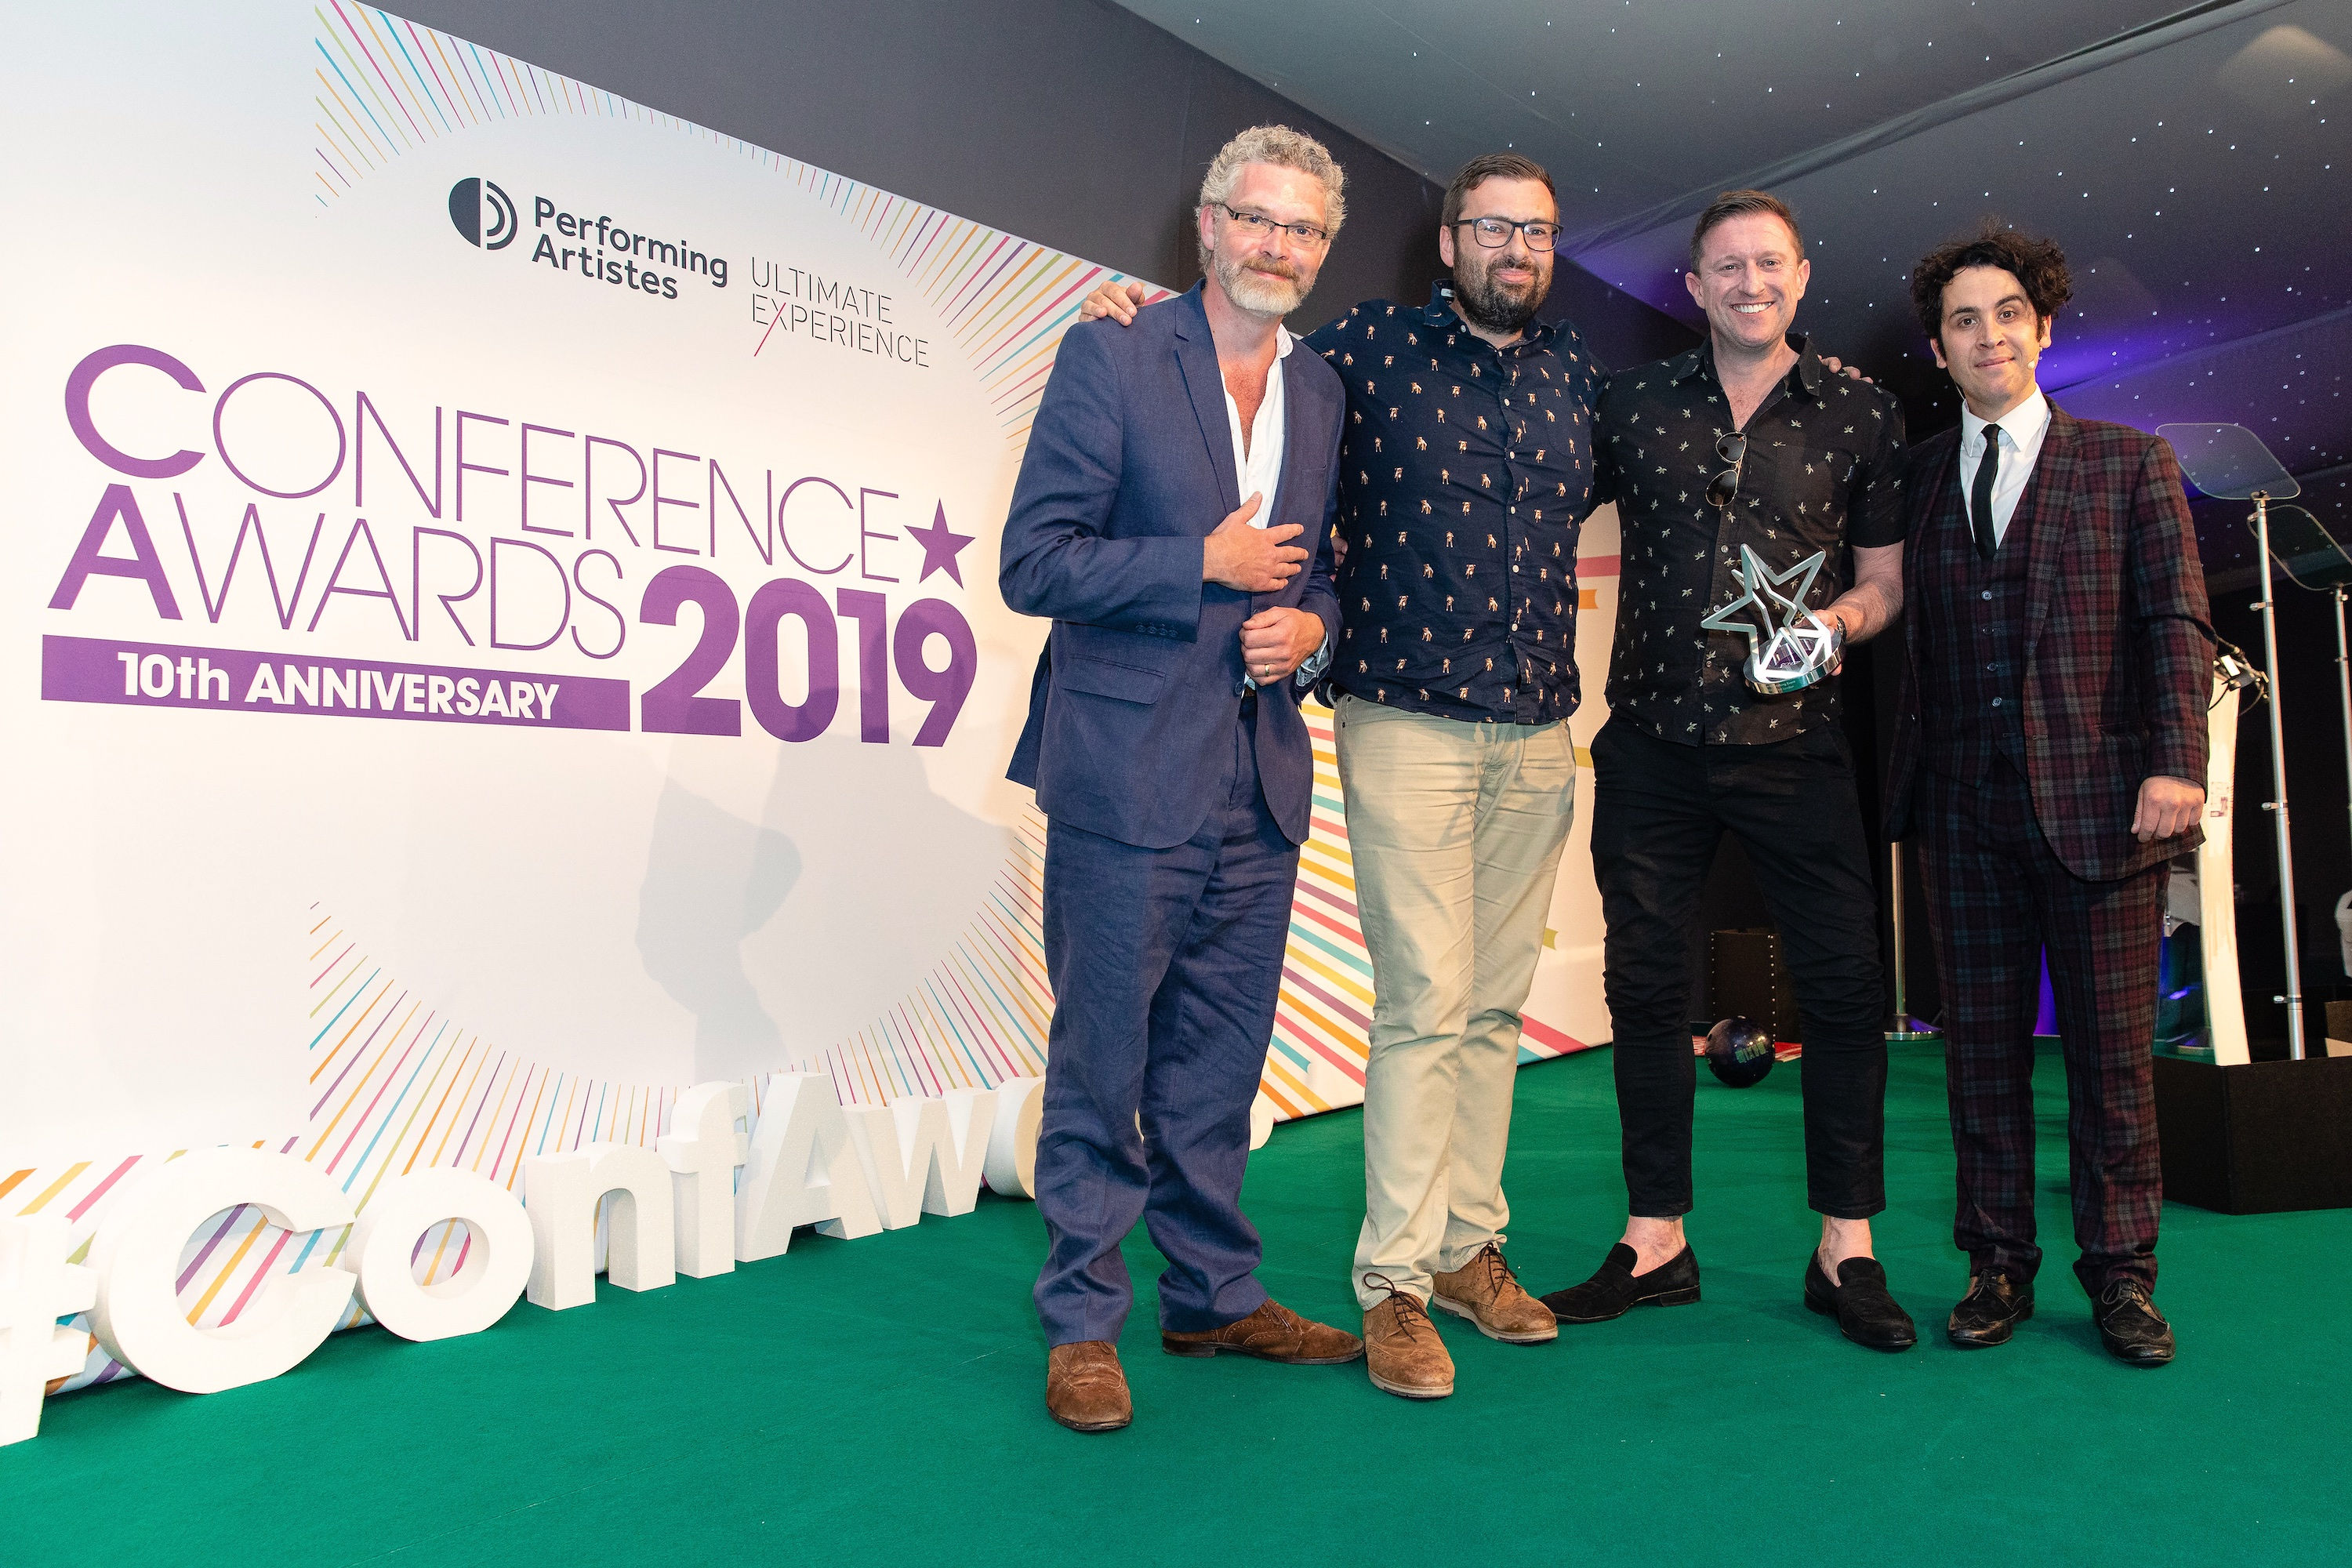 MAD//Fest London Conference Awards 2019 Best Networking Event.